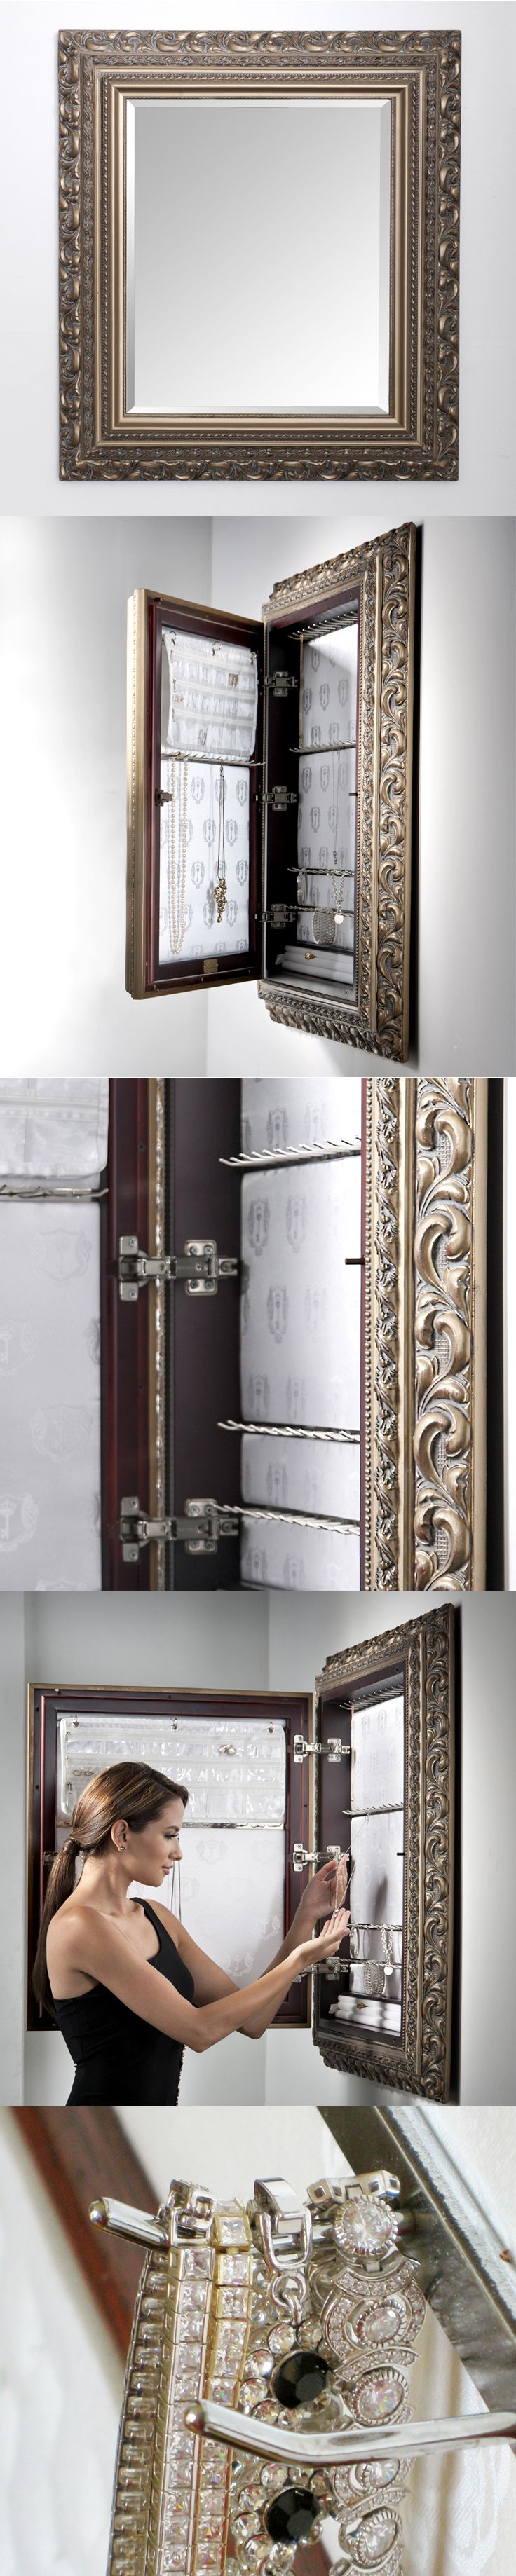 An elegantly smart jewelry organizer.  Love! http://royaldelgoti.com/shop/mount-jewelry-armoire-organizer-mirror/